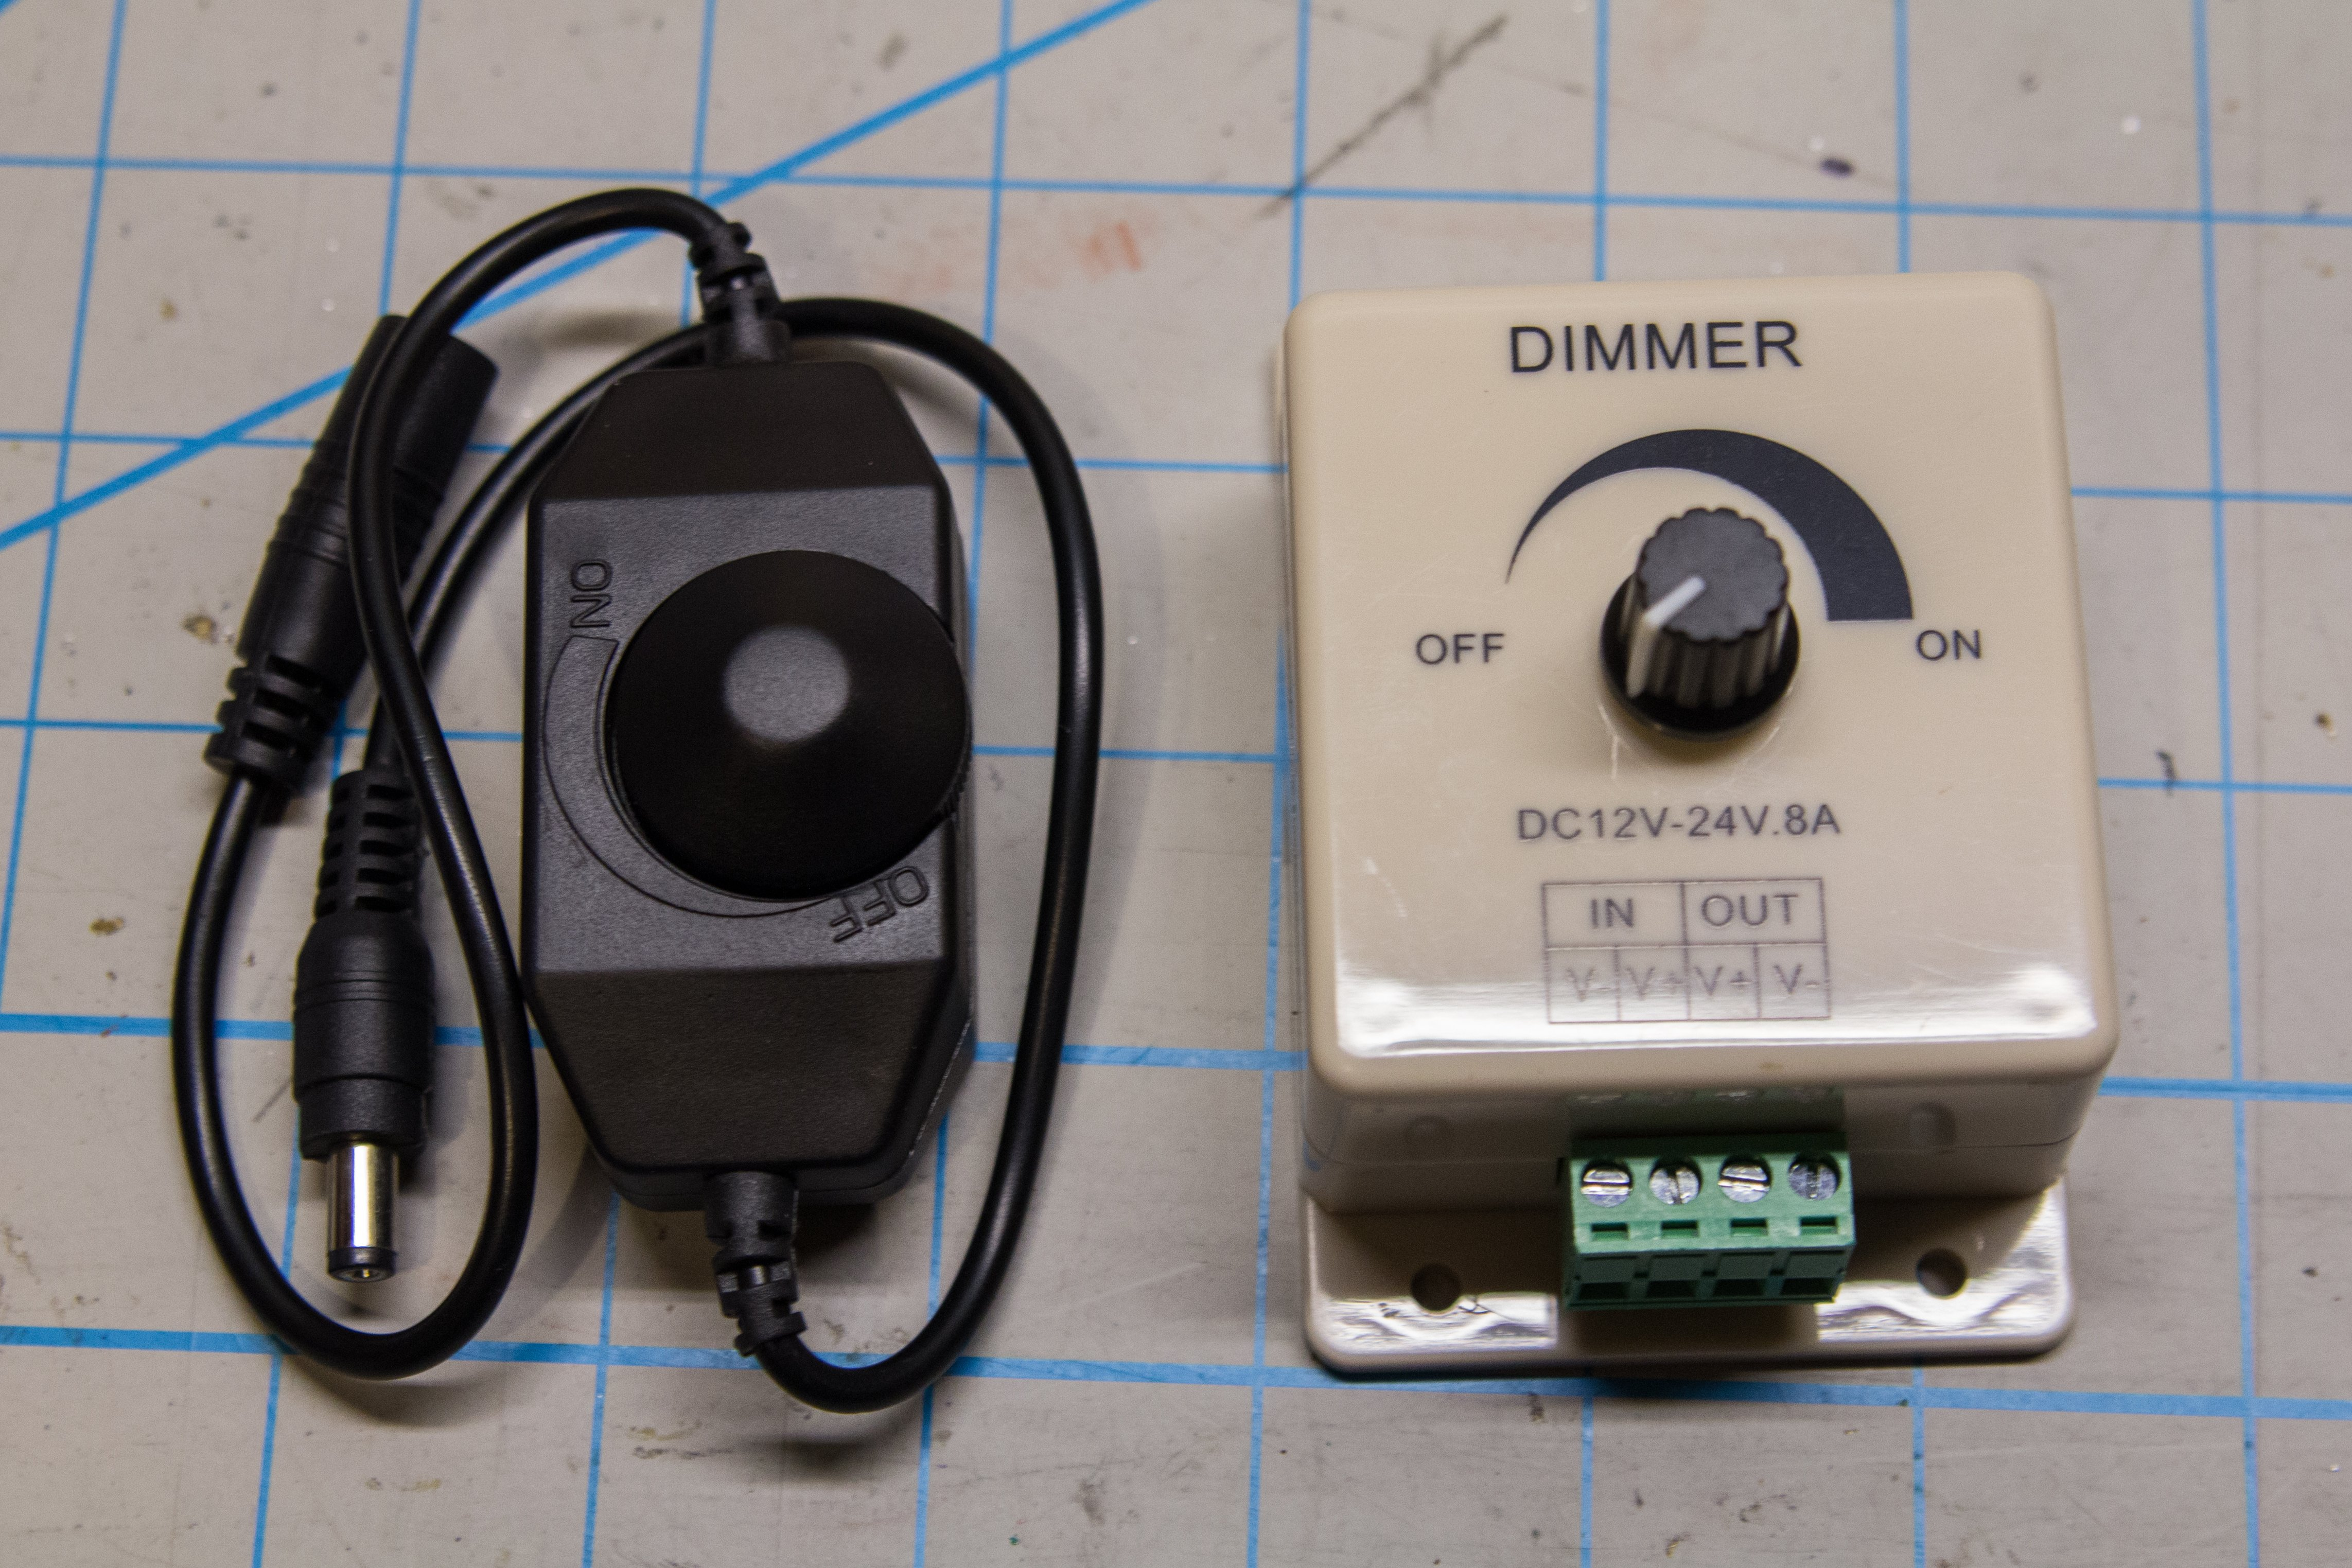 The dimmer on the left is an inline dimmer that comes with many LED kits. It is unsuitable for video use. The one on the right is much better suited for our needs.